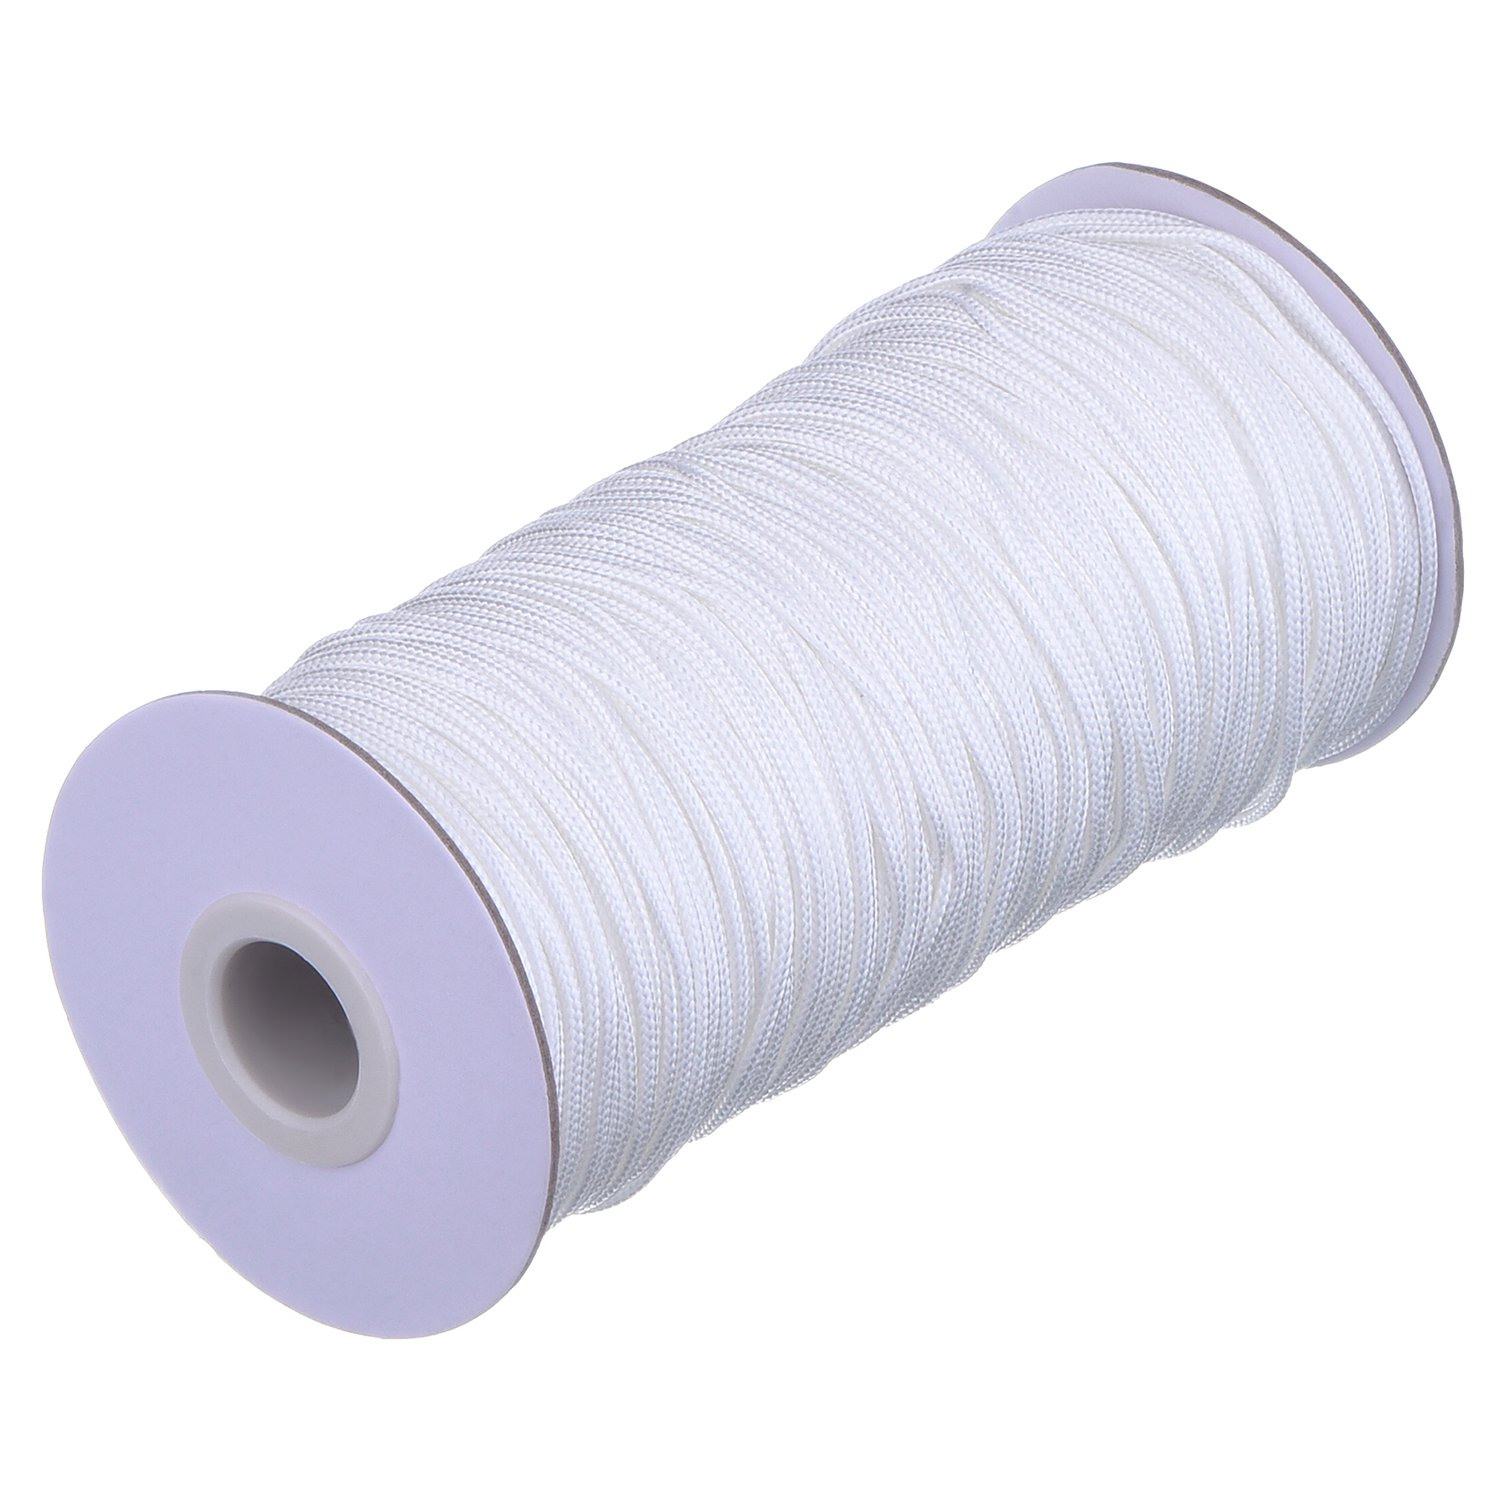 Outus 109 Yards//Roll White Braided Lift Shade Cord for Aluminum Blind Shade Gardening Plant and Crafts 1.8 mm